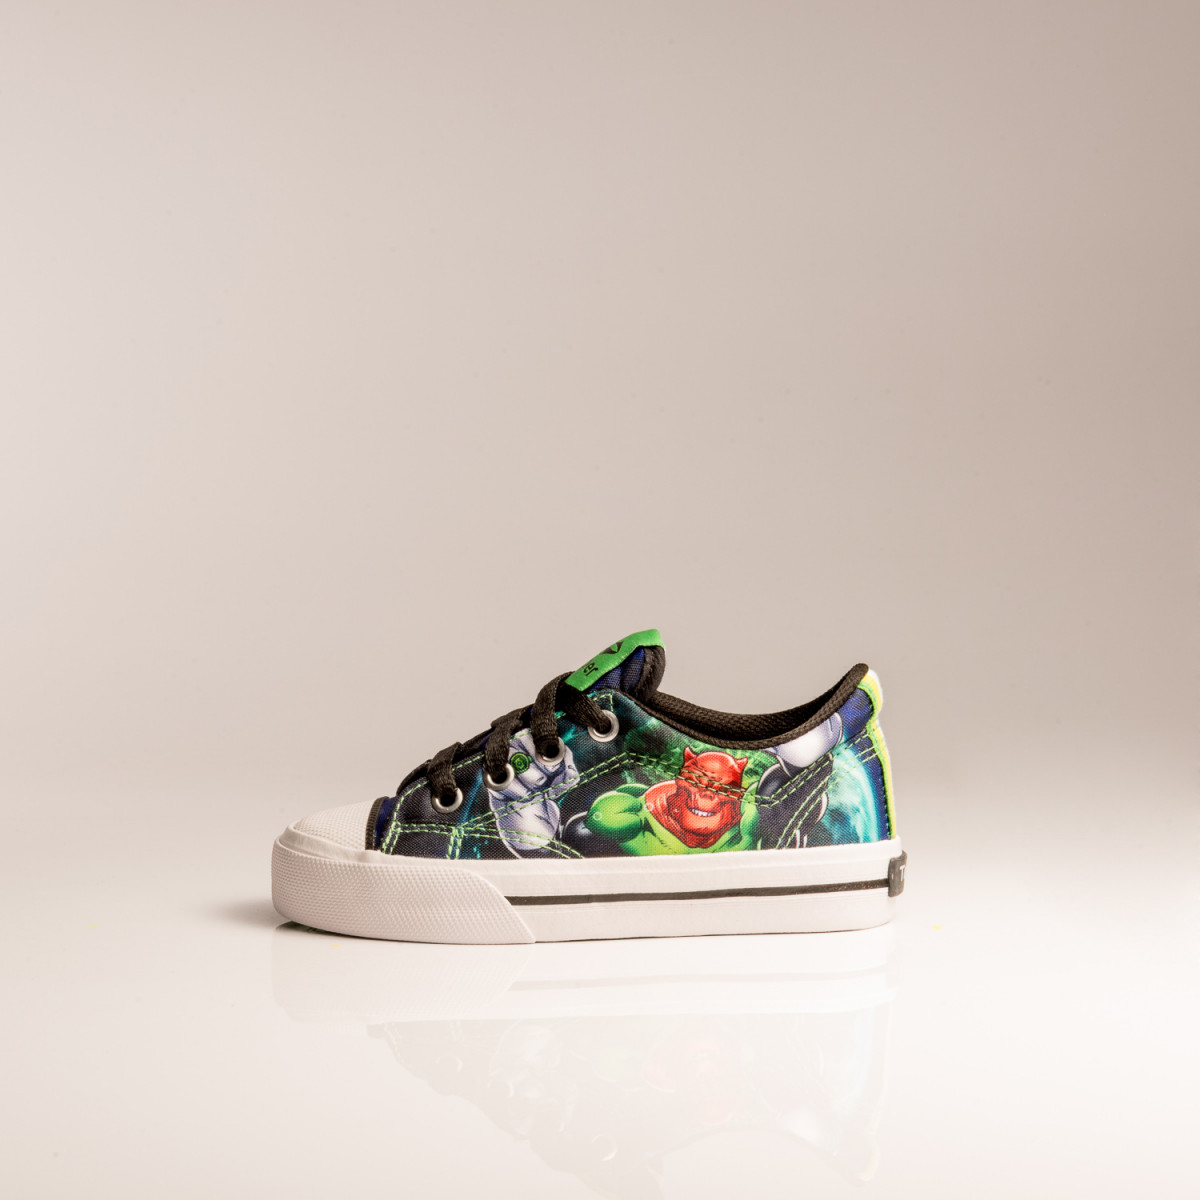 ZAPATILLAS TOPPER COMICS PROF LOW LINTERNA VERDE